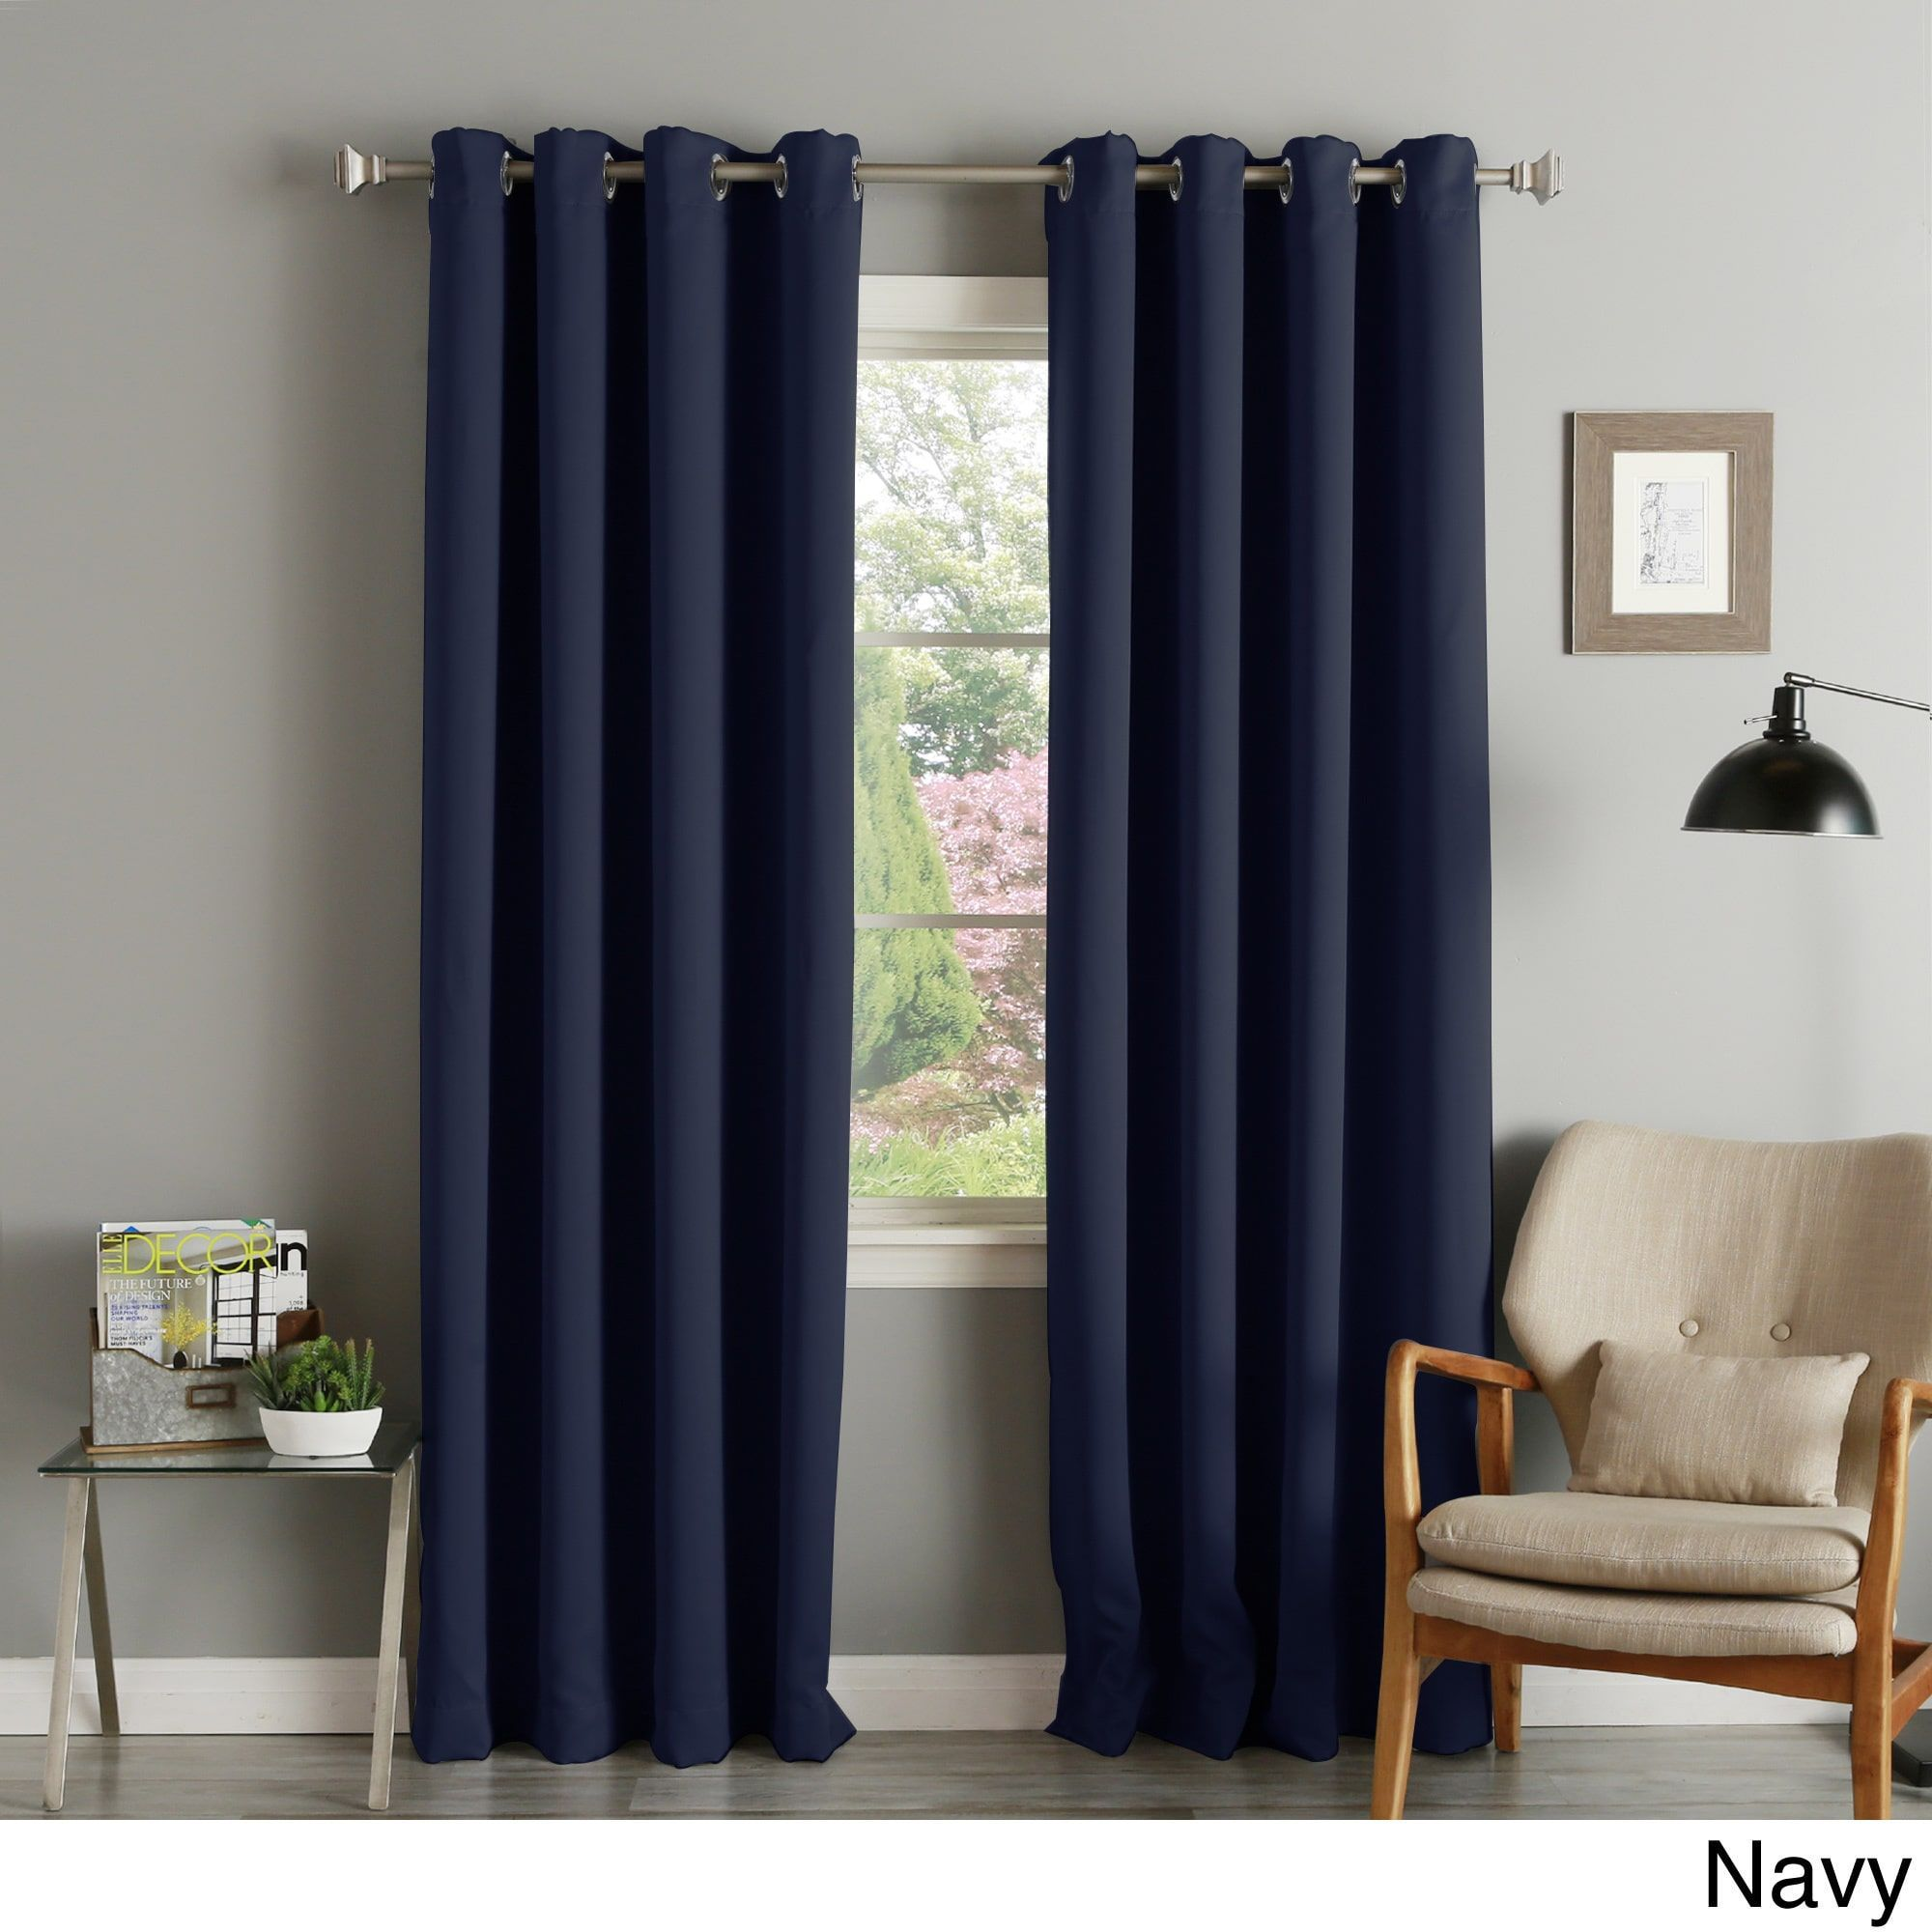 Aurora Home Silver Grommet Top Thermal Insulated 108 Inch Blackout Curtain Panel Pair Navy